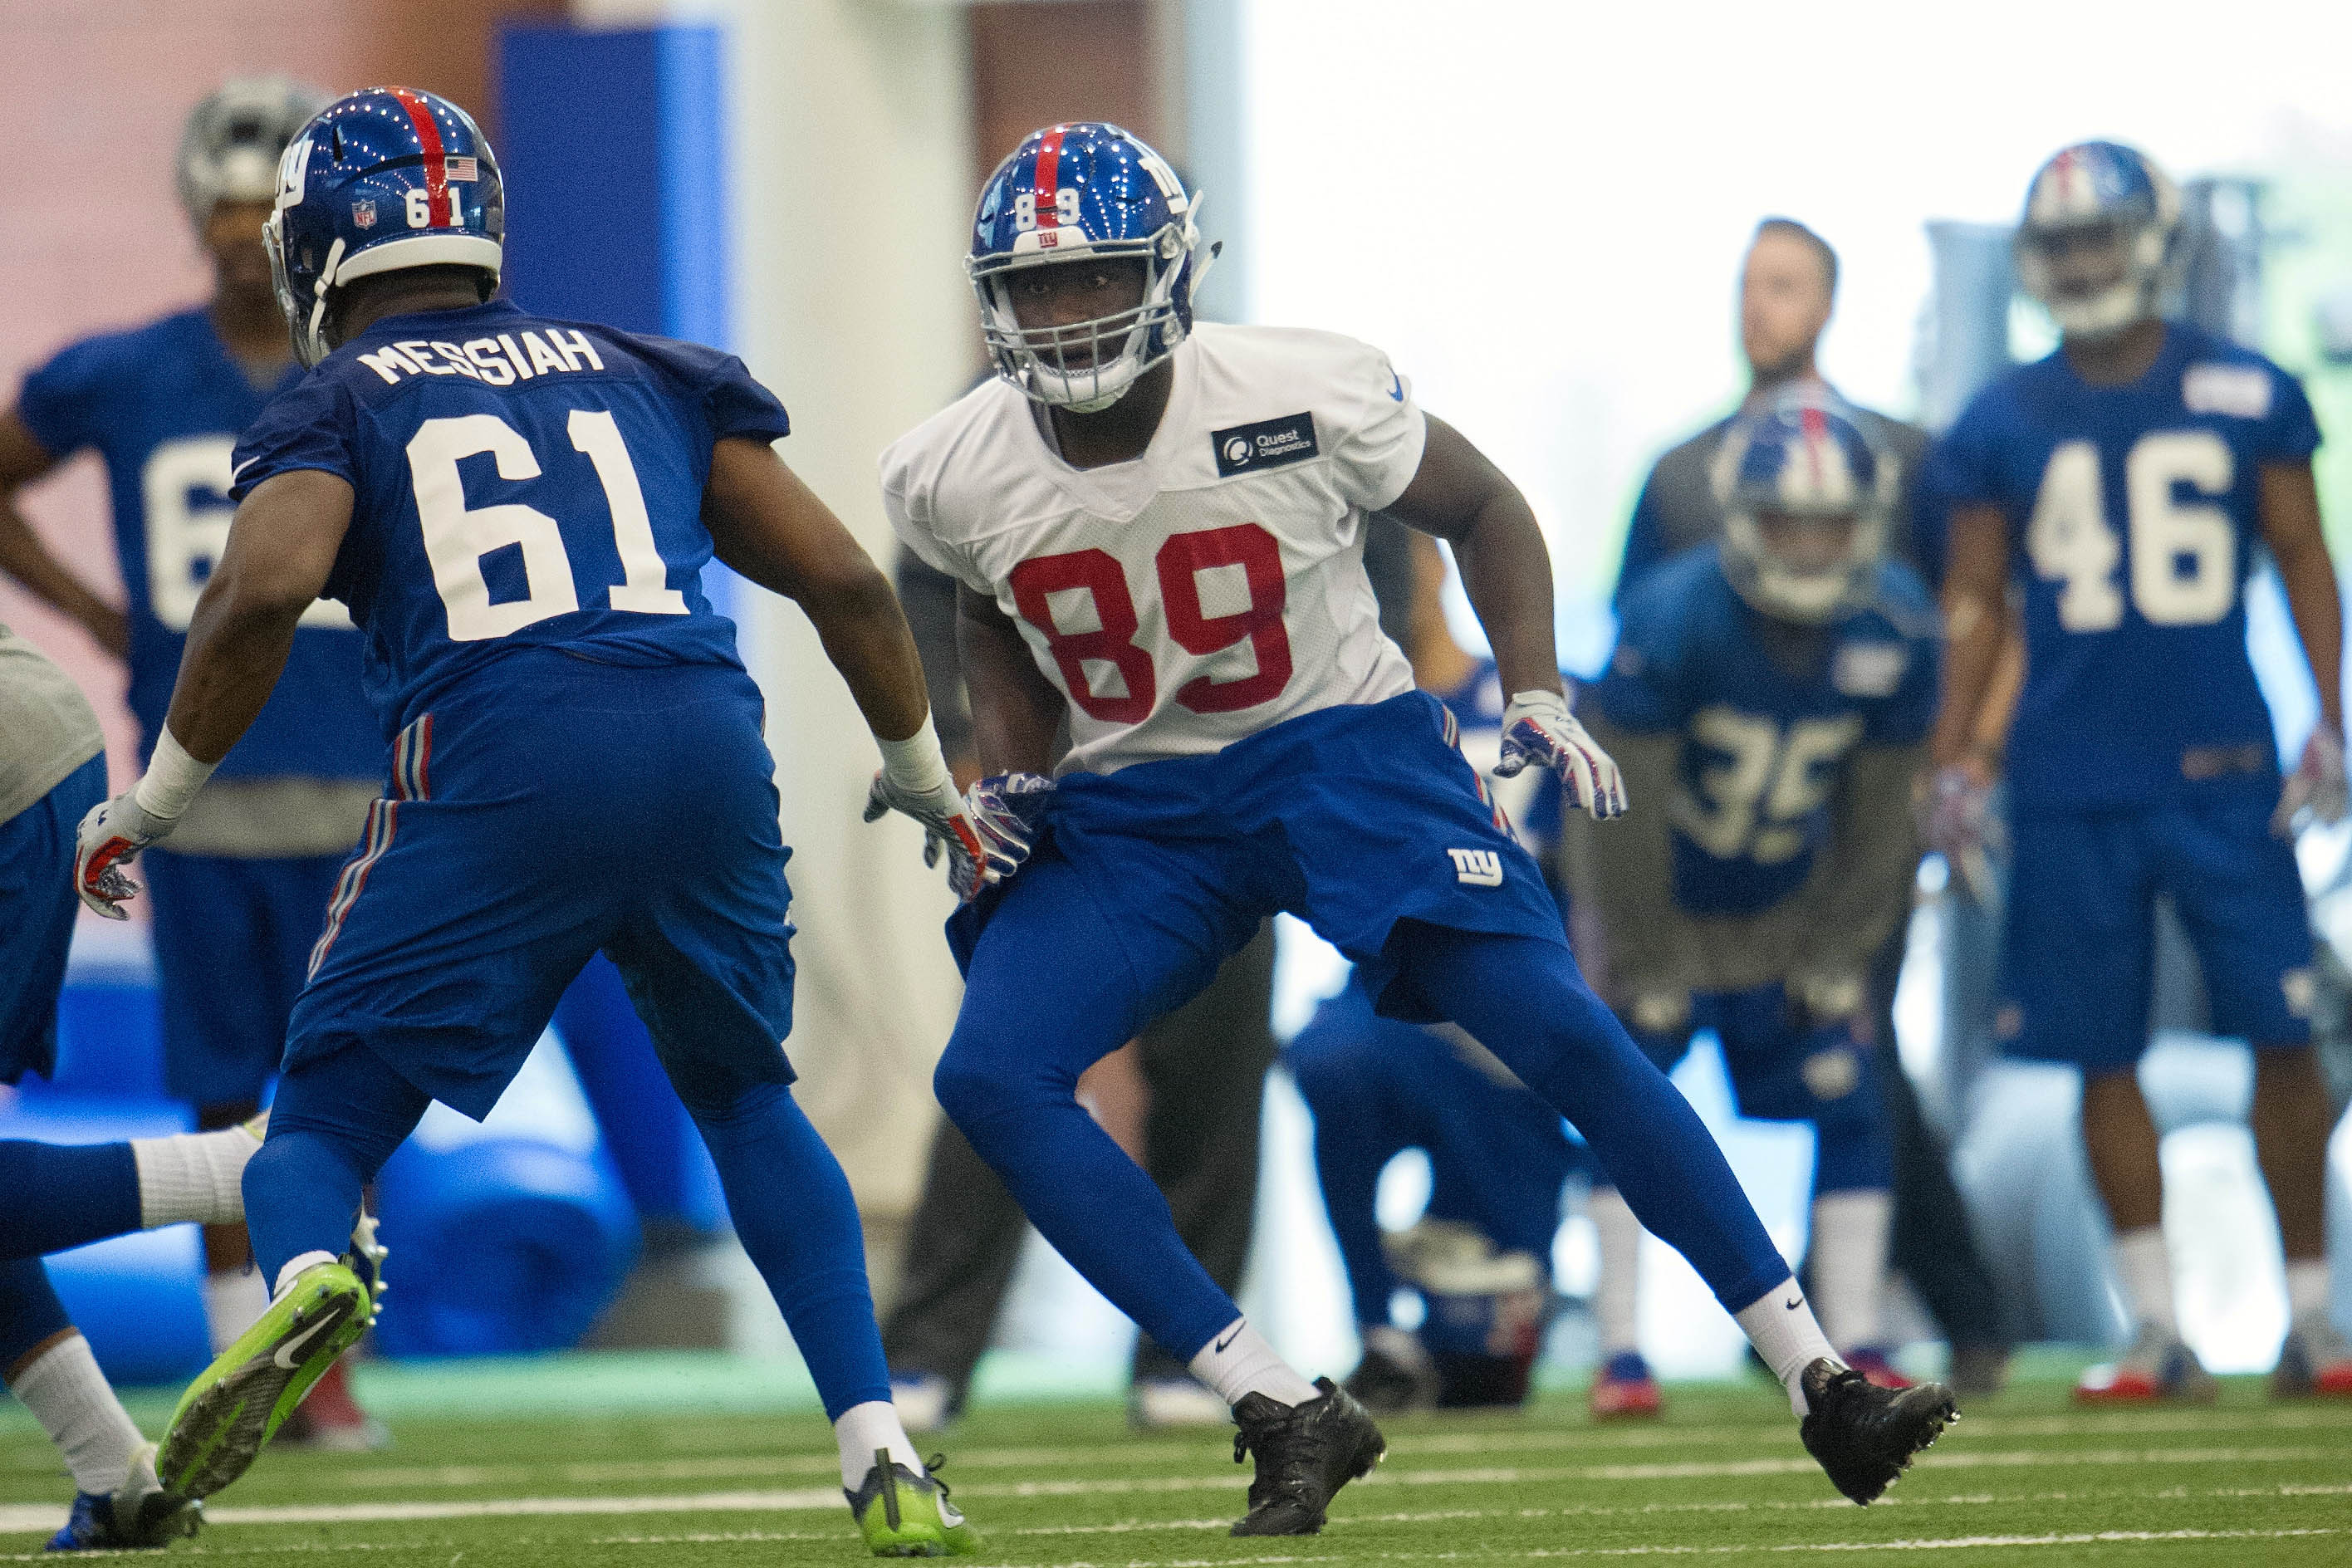 9283712-nfl-new-york-giants-rookie-minicamp